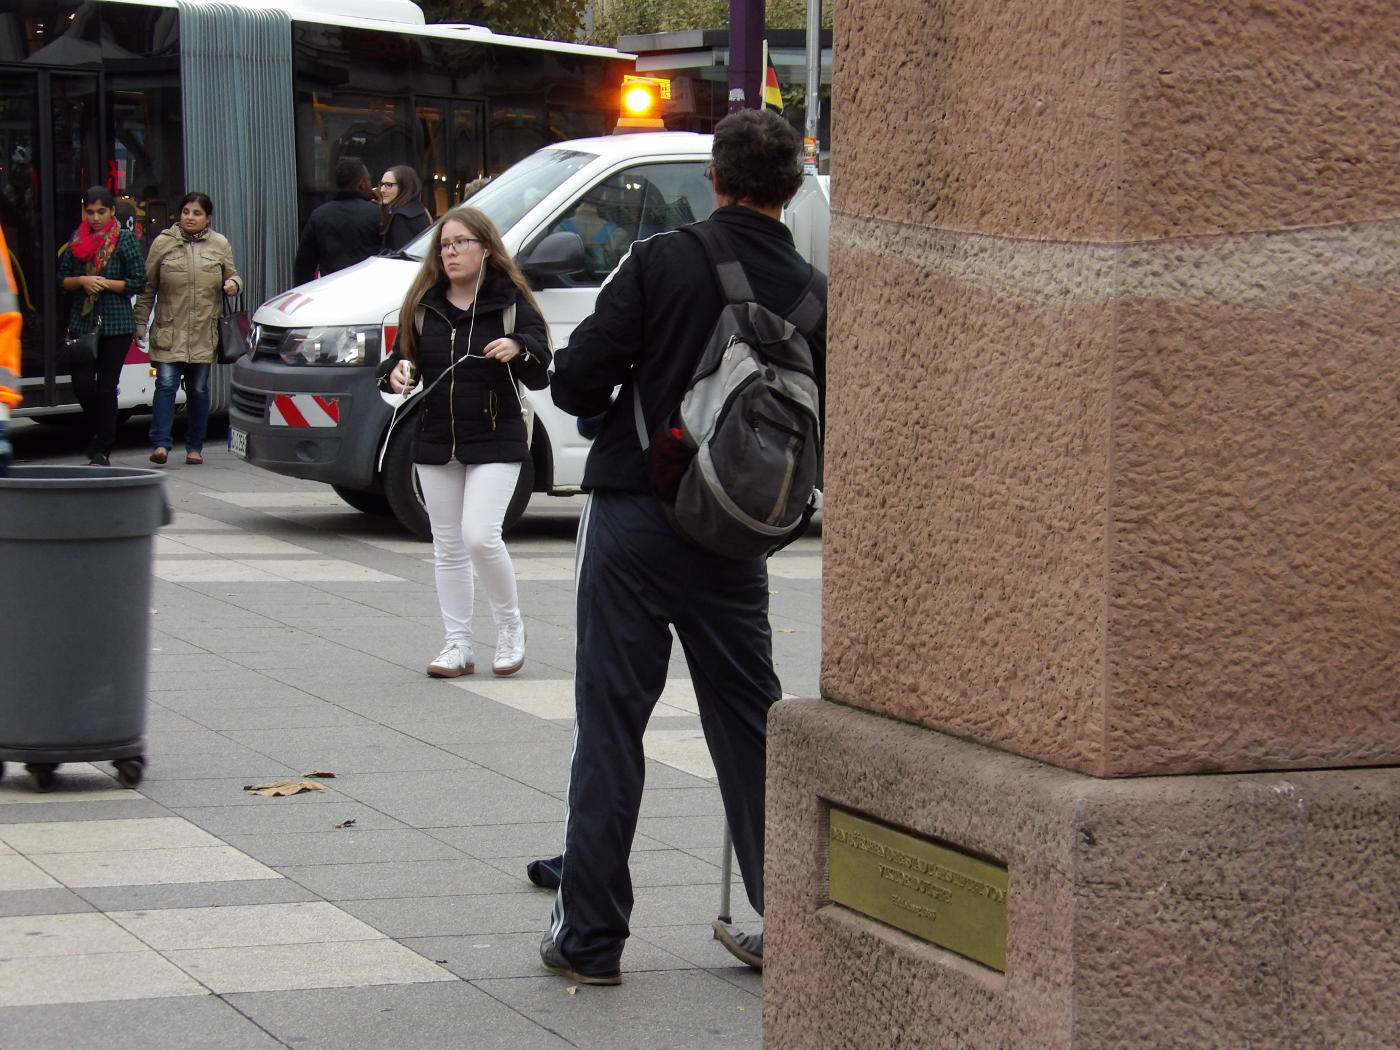 Heidelberg: A Professional Beggar and a Jehovah's Witness